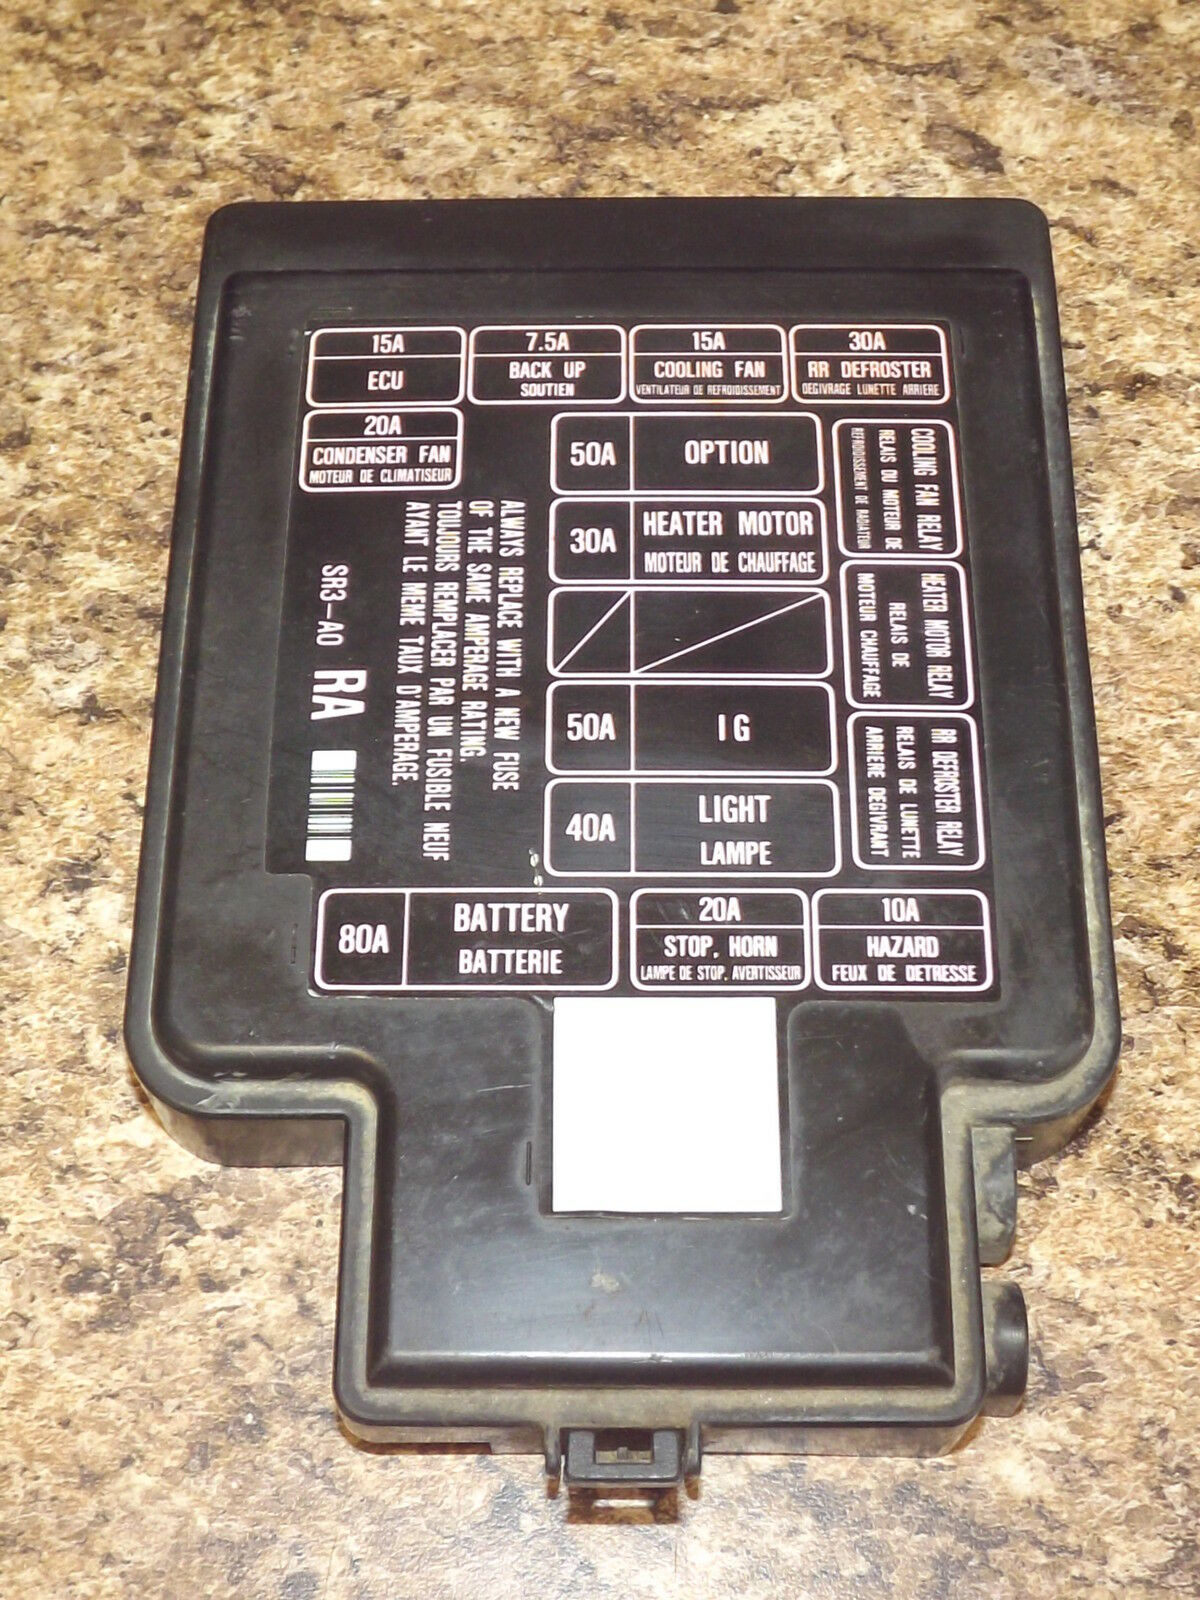 Eg Civic Engine Fuse Box Residential Electrical Symbols \u2022 2003 Honda  Civic Fuse Box Diagram 94 Eg Civic Fuse Box Diagram